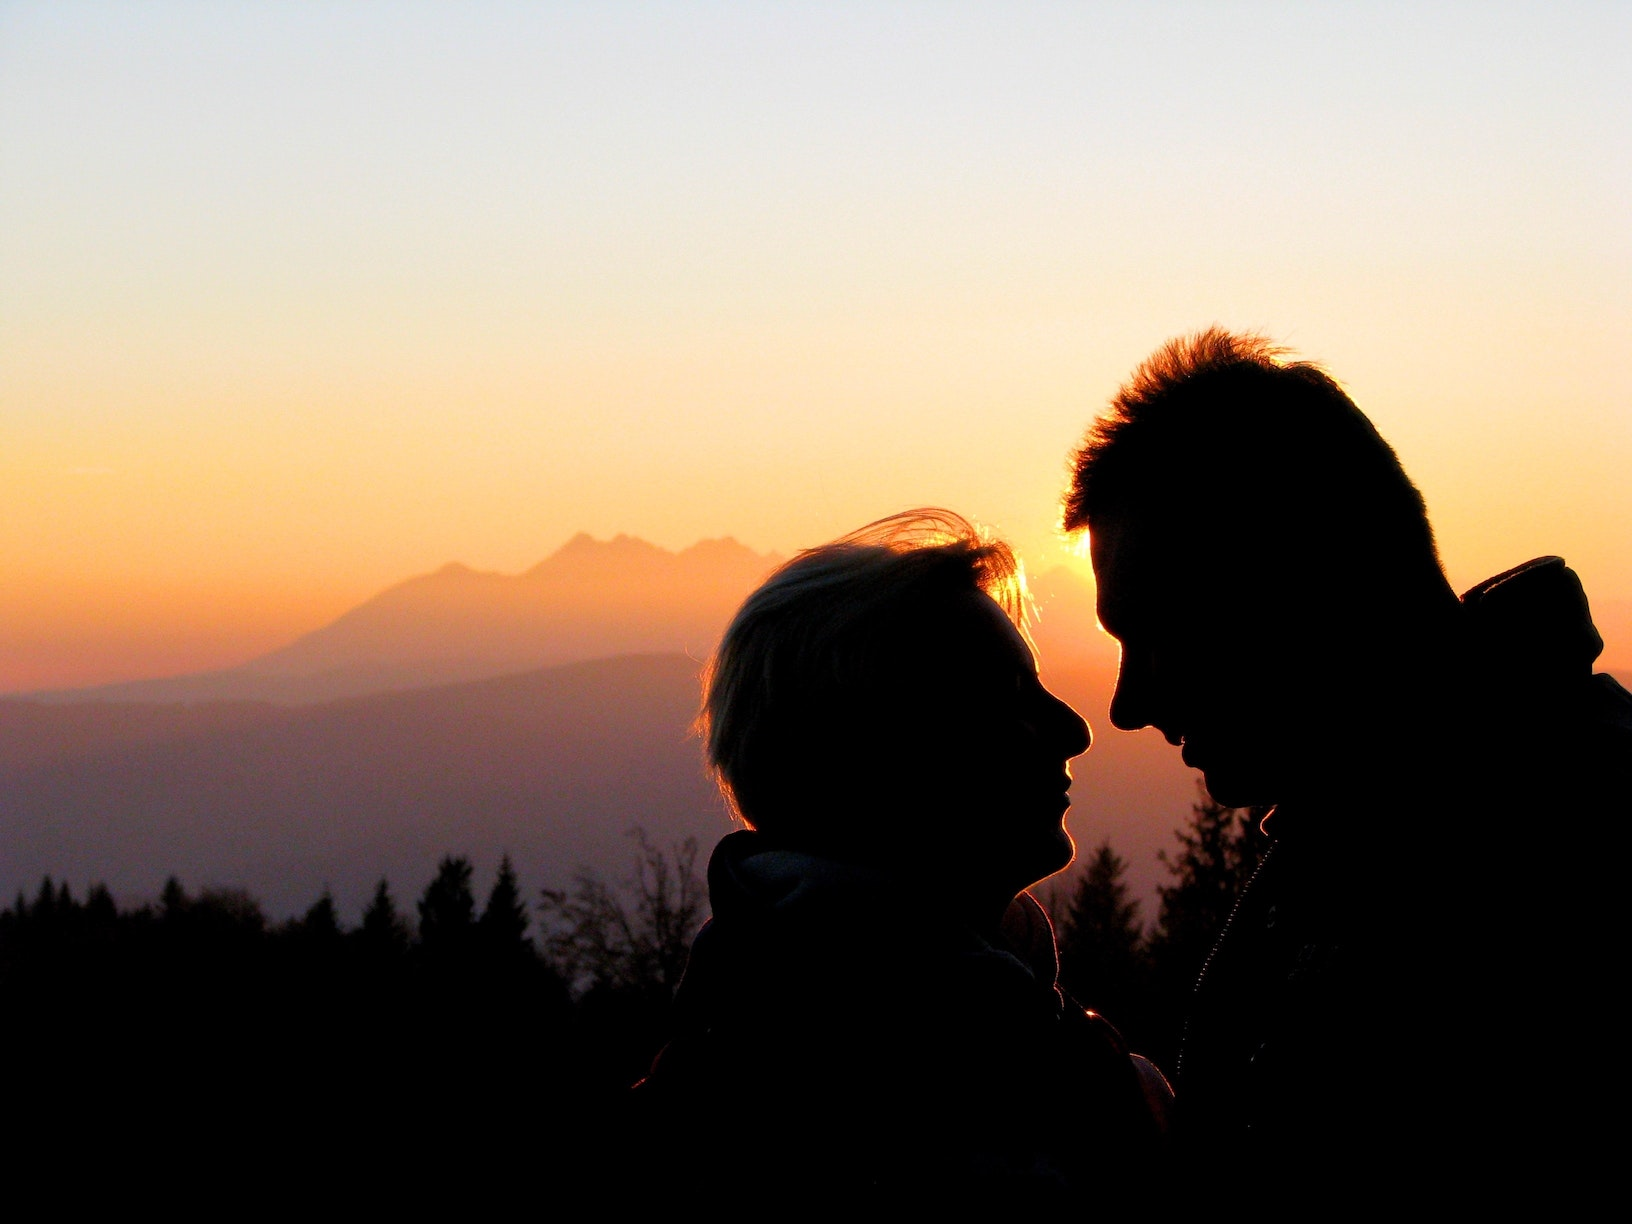 Man and his woman looking at each other with sun in the background creating a silhouette effect - courtship